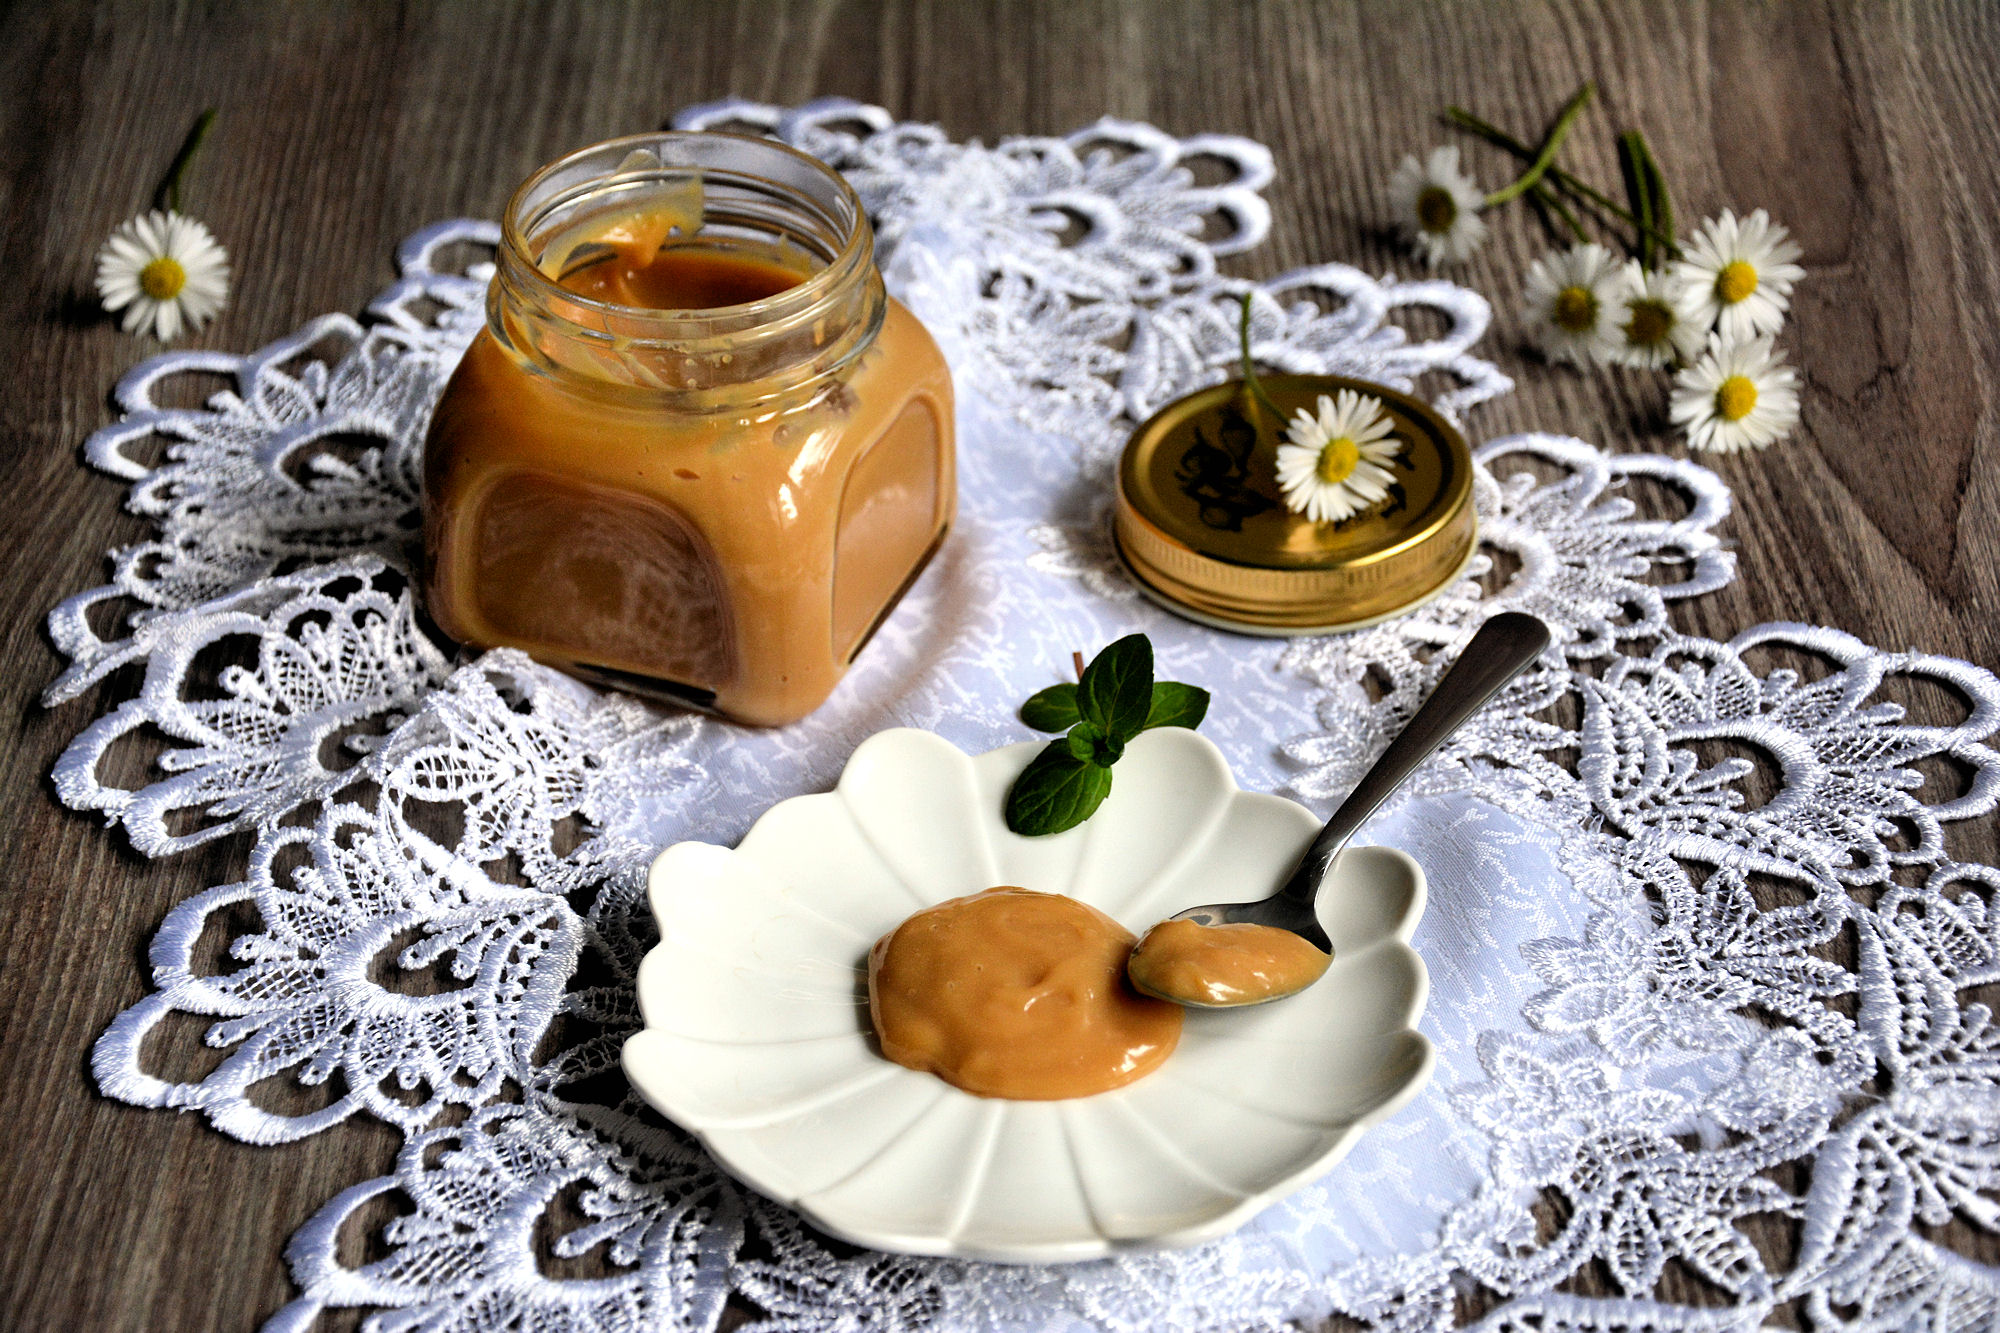 Dulce de leche (video)